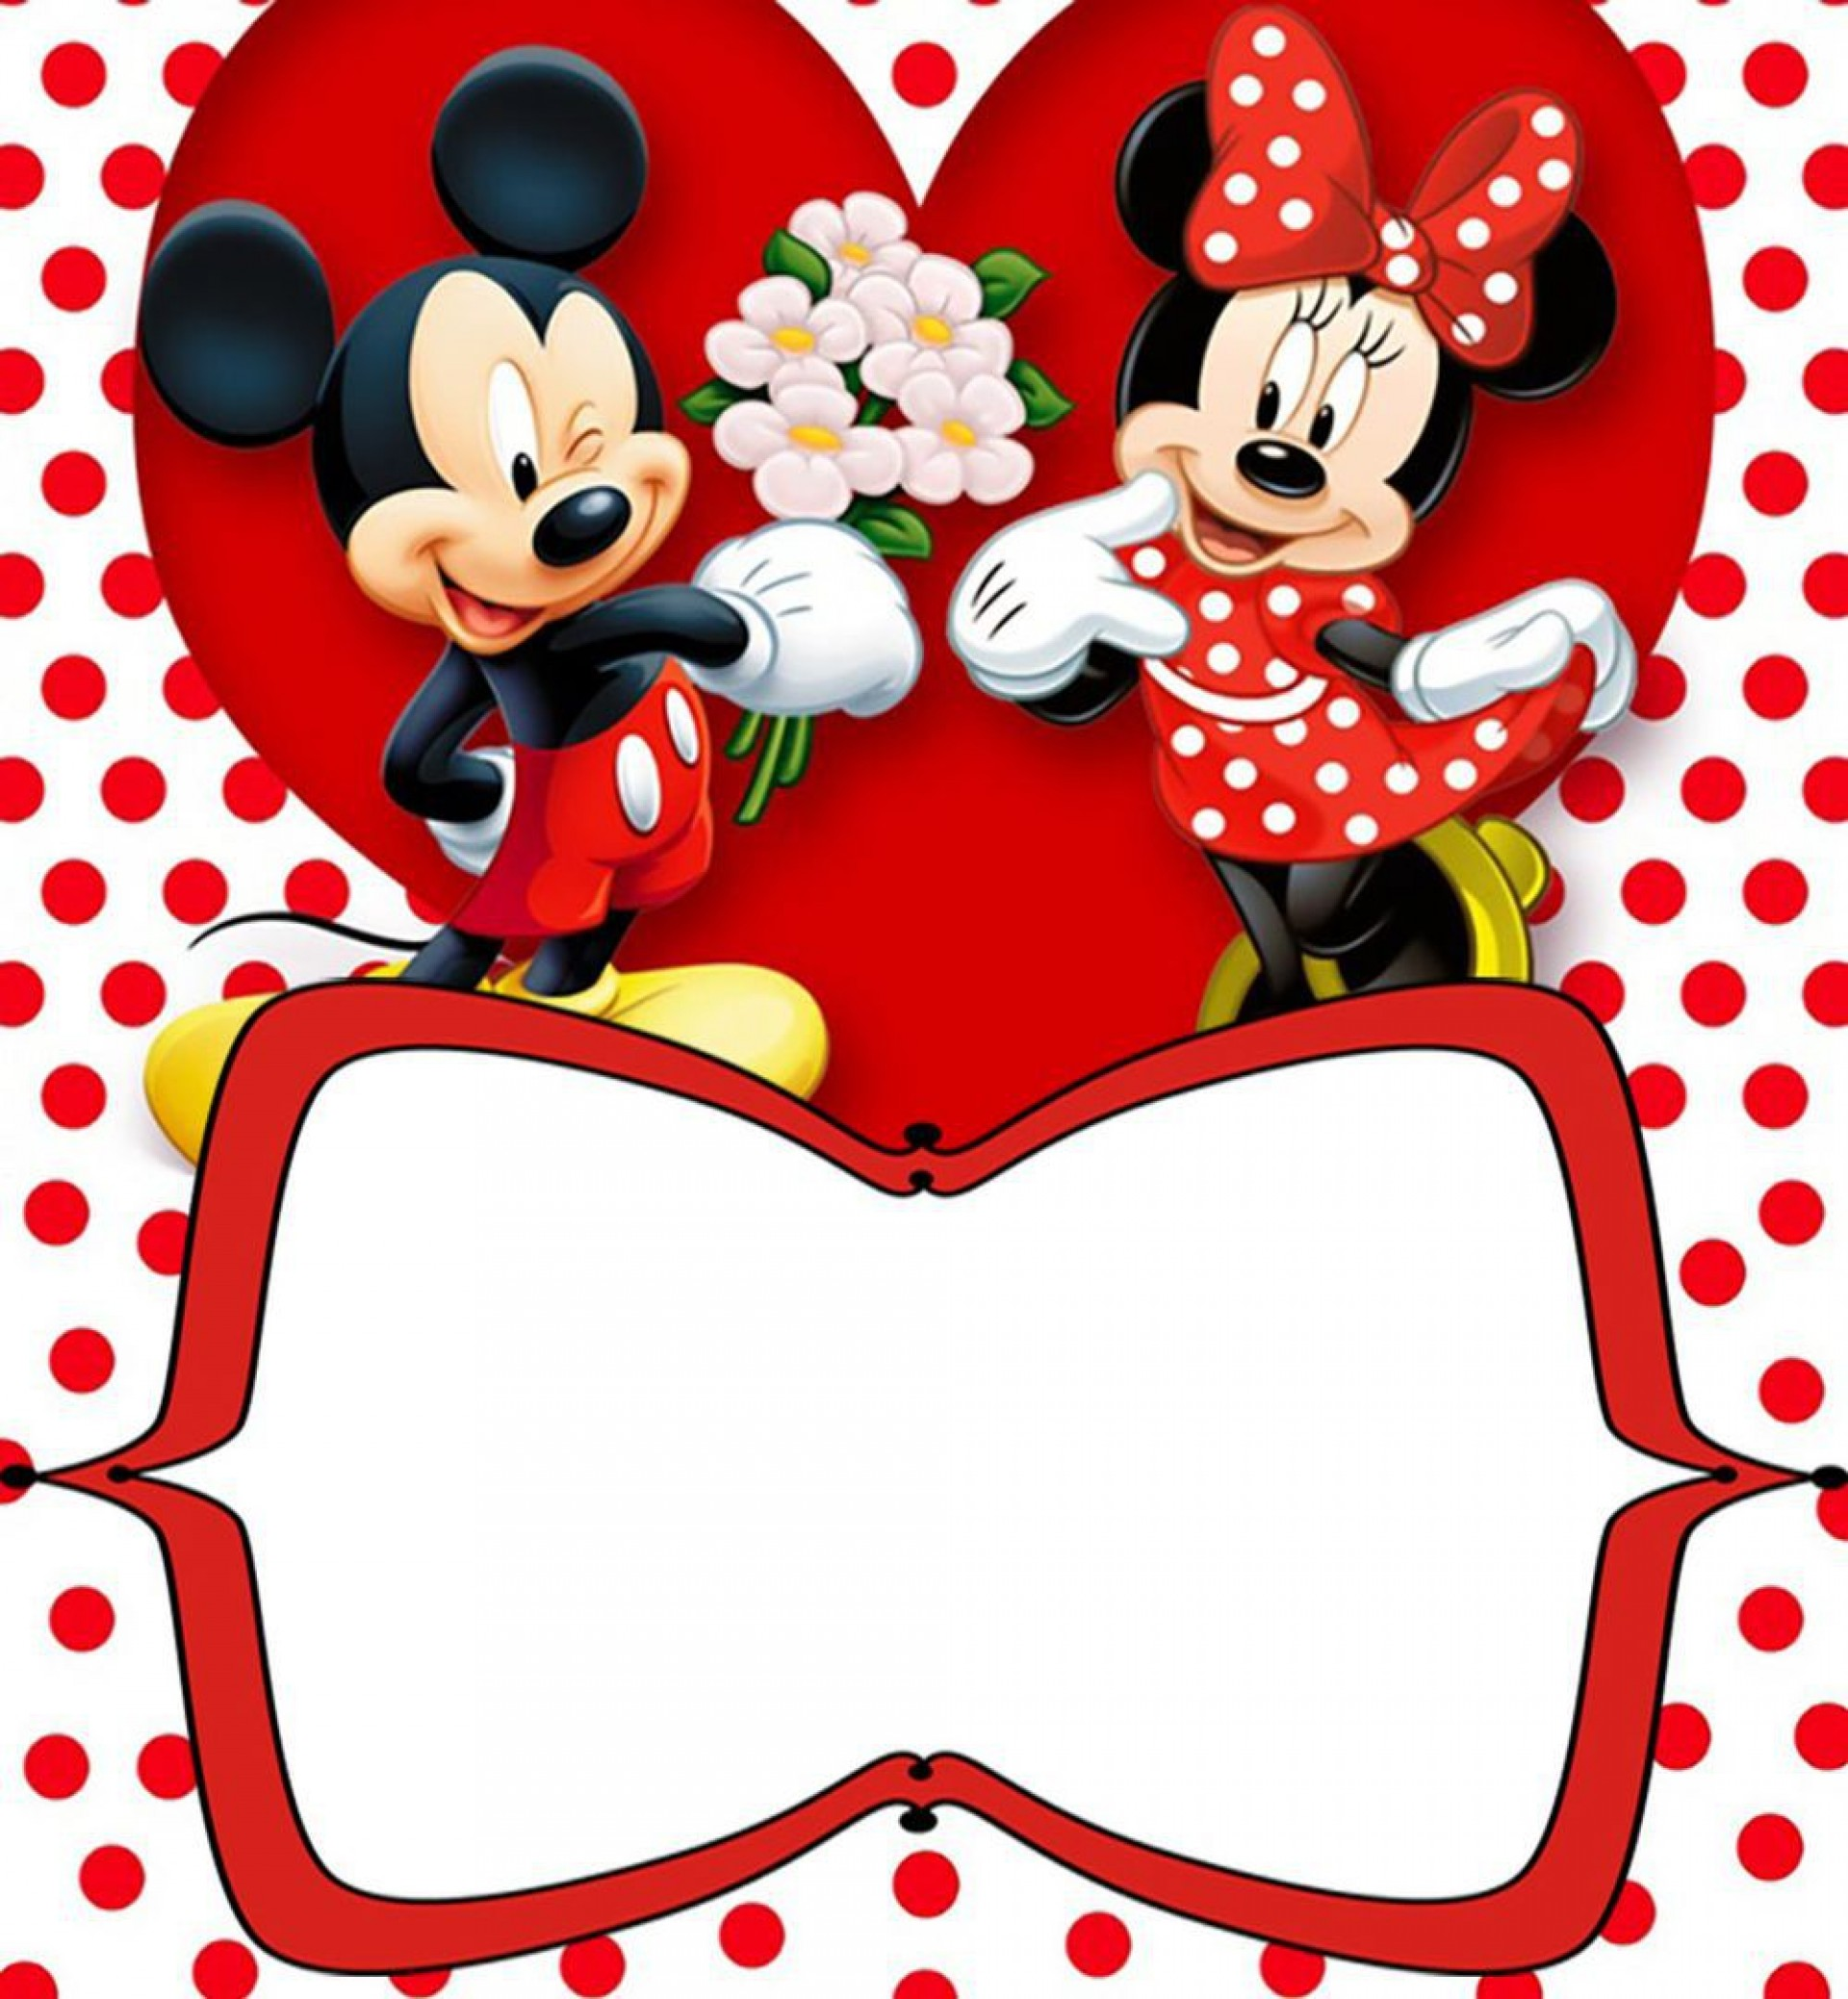 013 Best Mickey Mouse Invitation Template Highest Quality  Free Diy 1st Birthday Baby Download1920